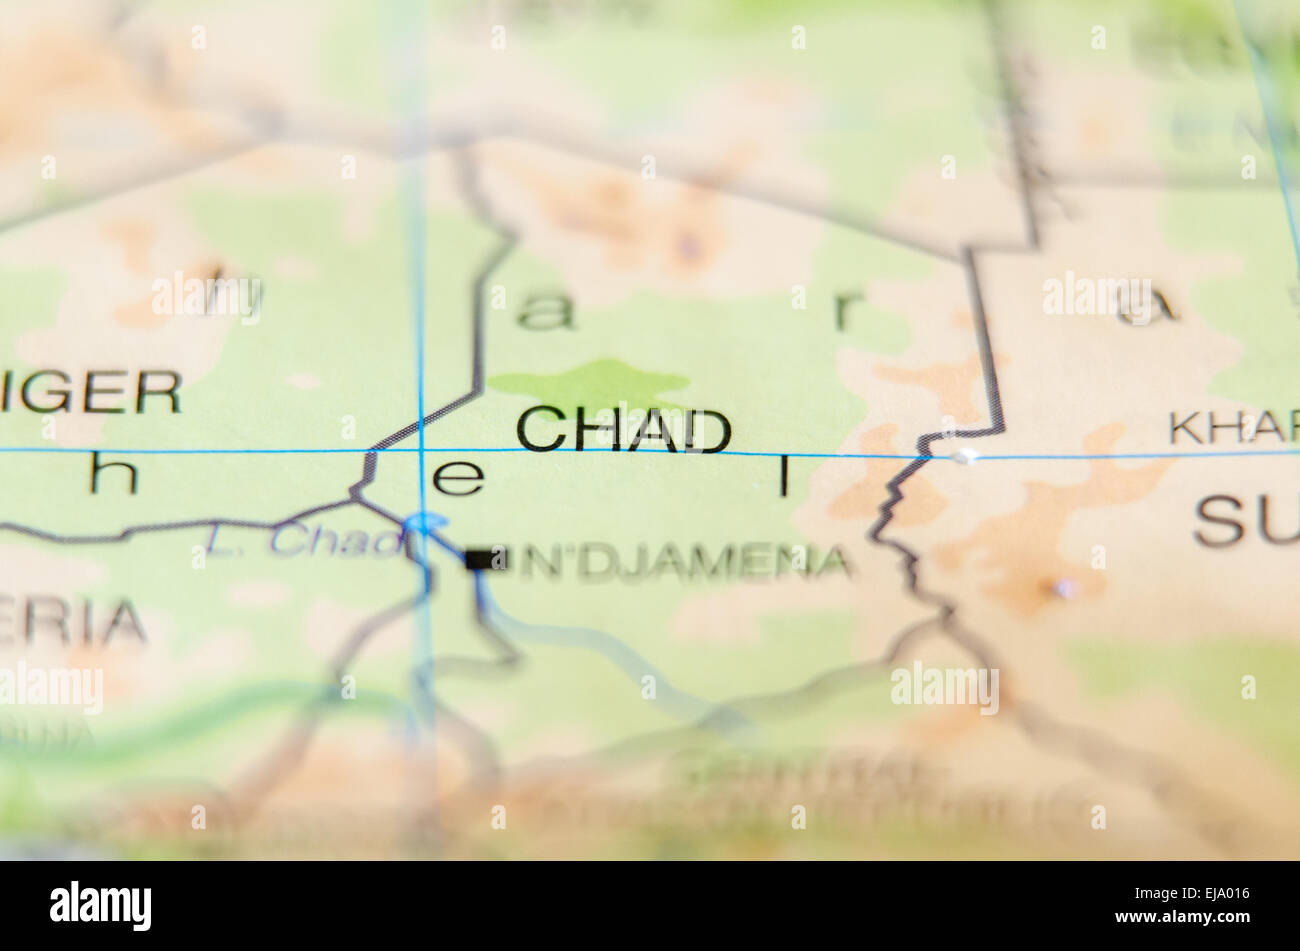 chad country on map - Stock Image